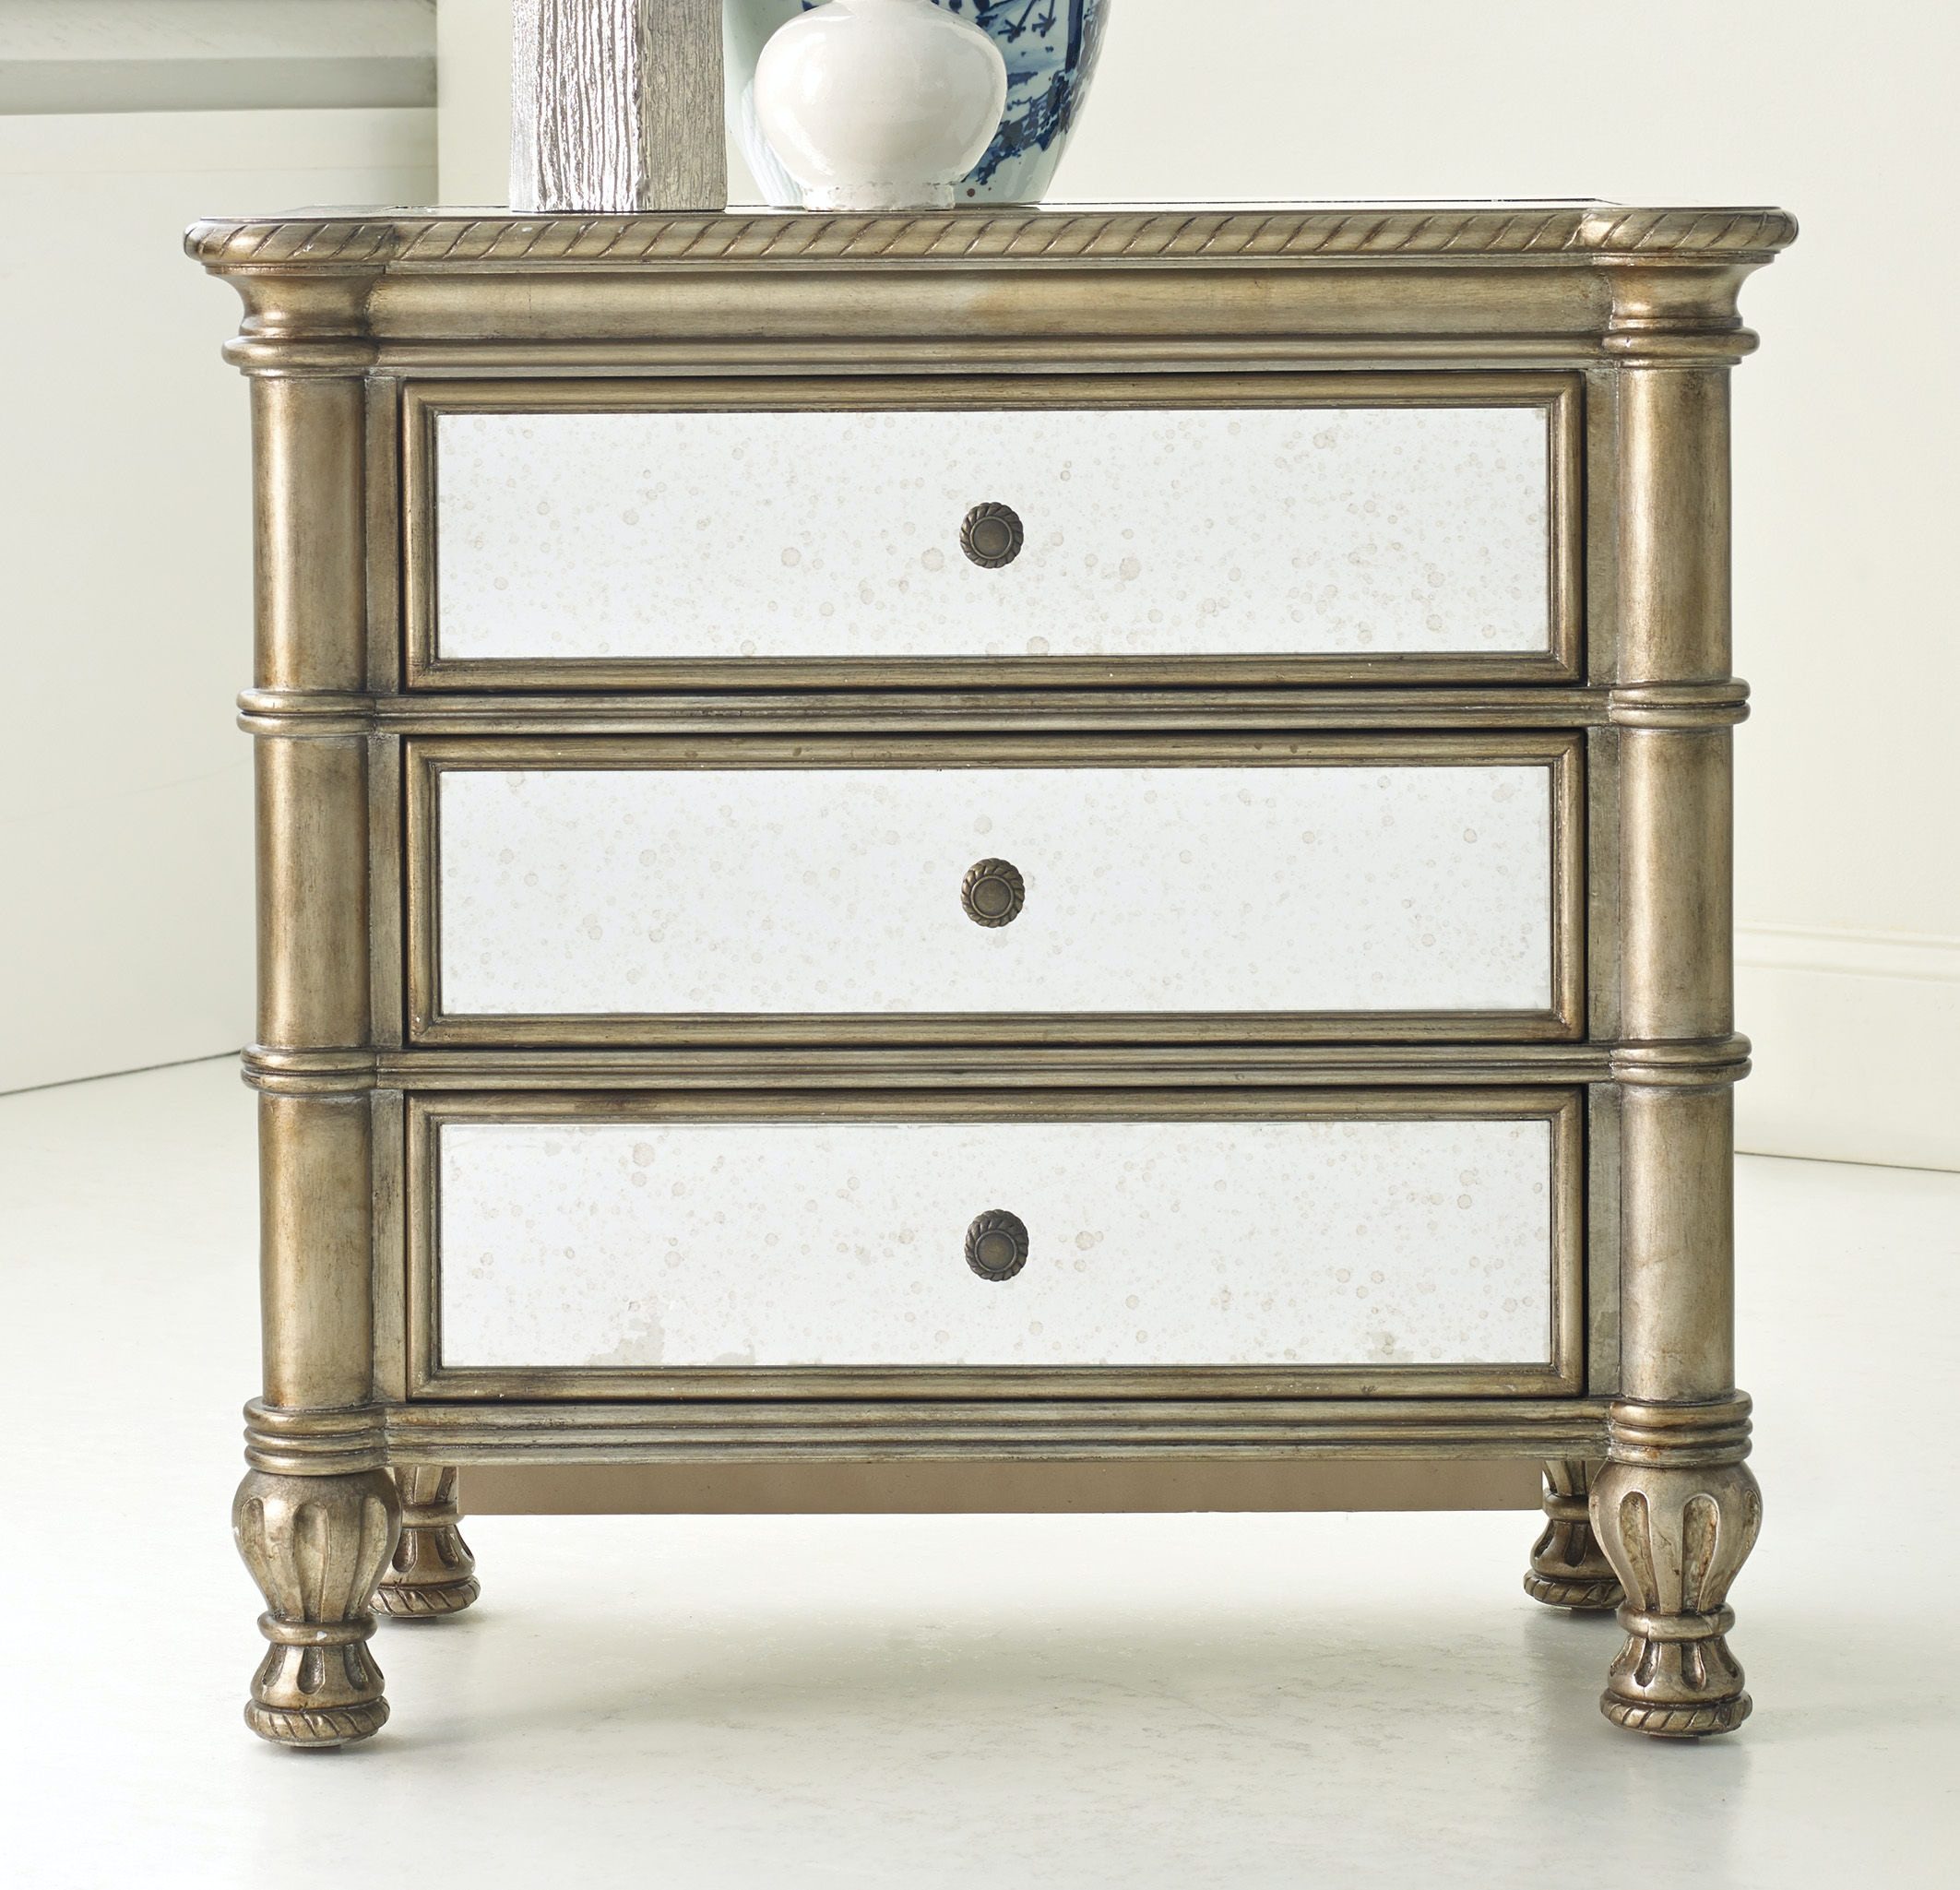 Hooker Furniture Montage Bedside Chest 638-90901